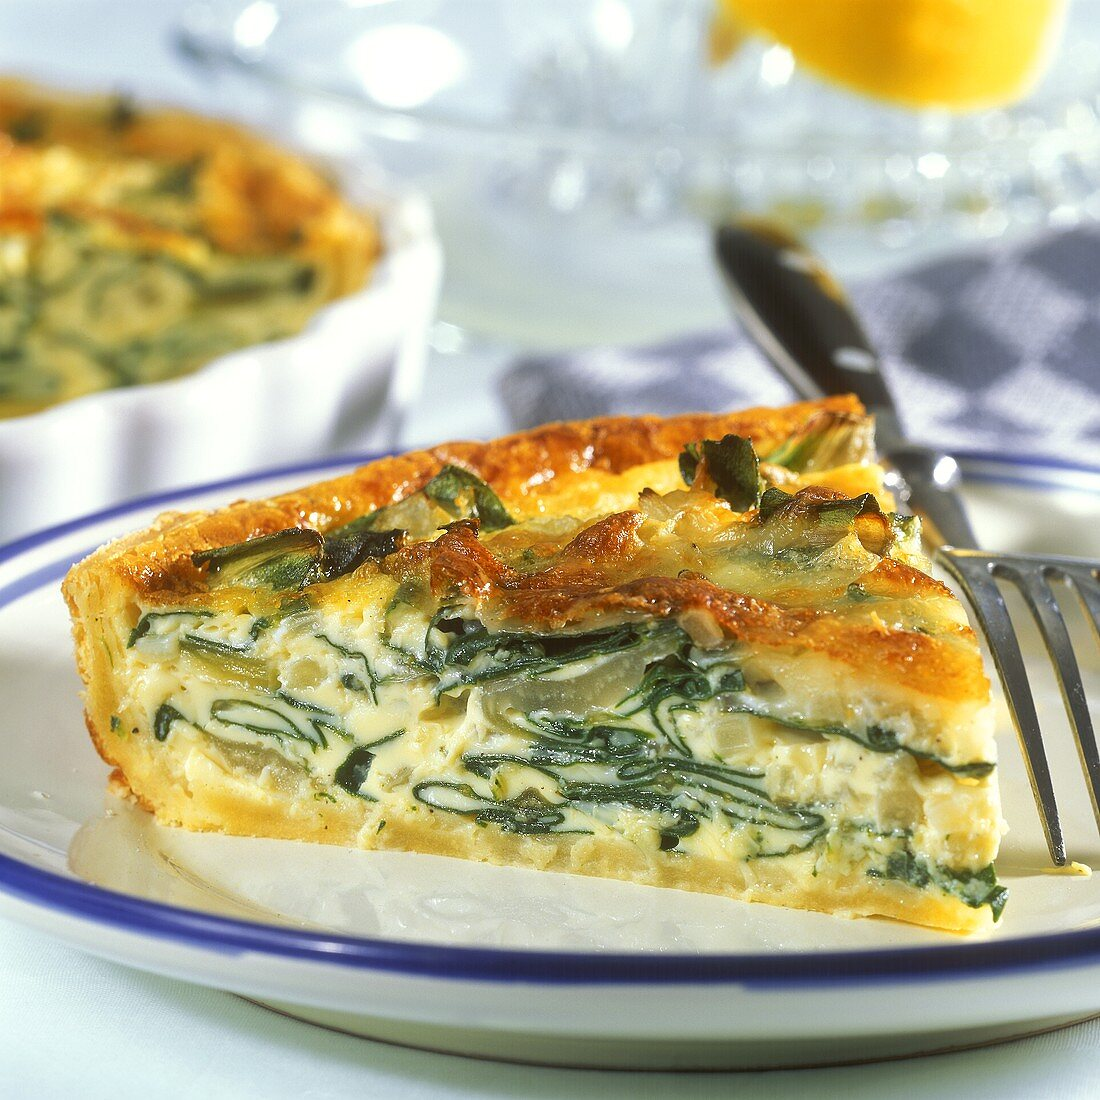 Piece of chard quiche on plate in front of baking dish